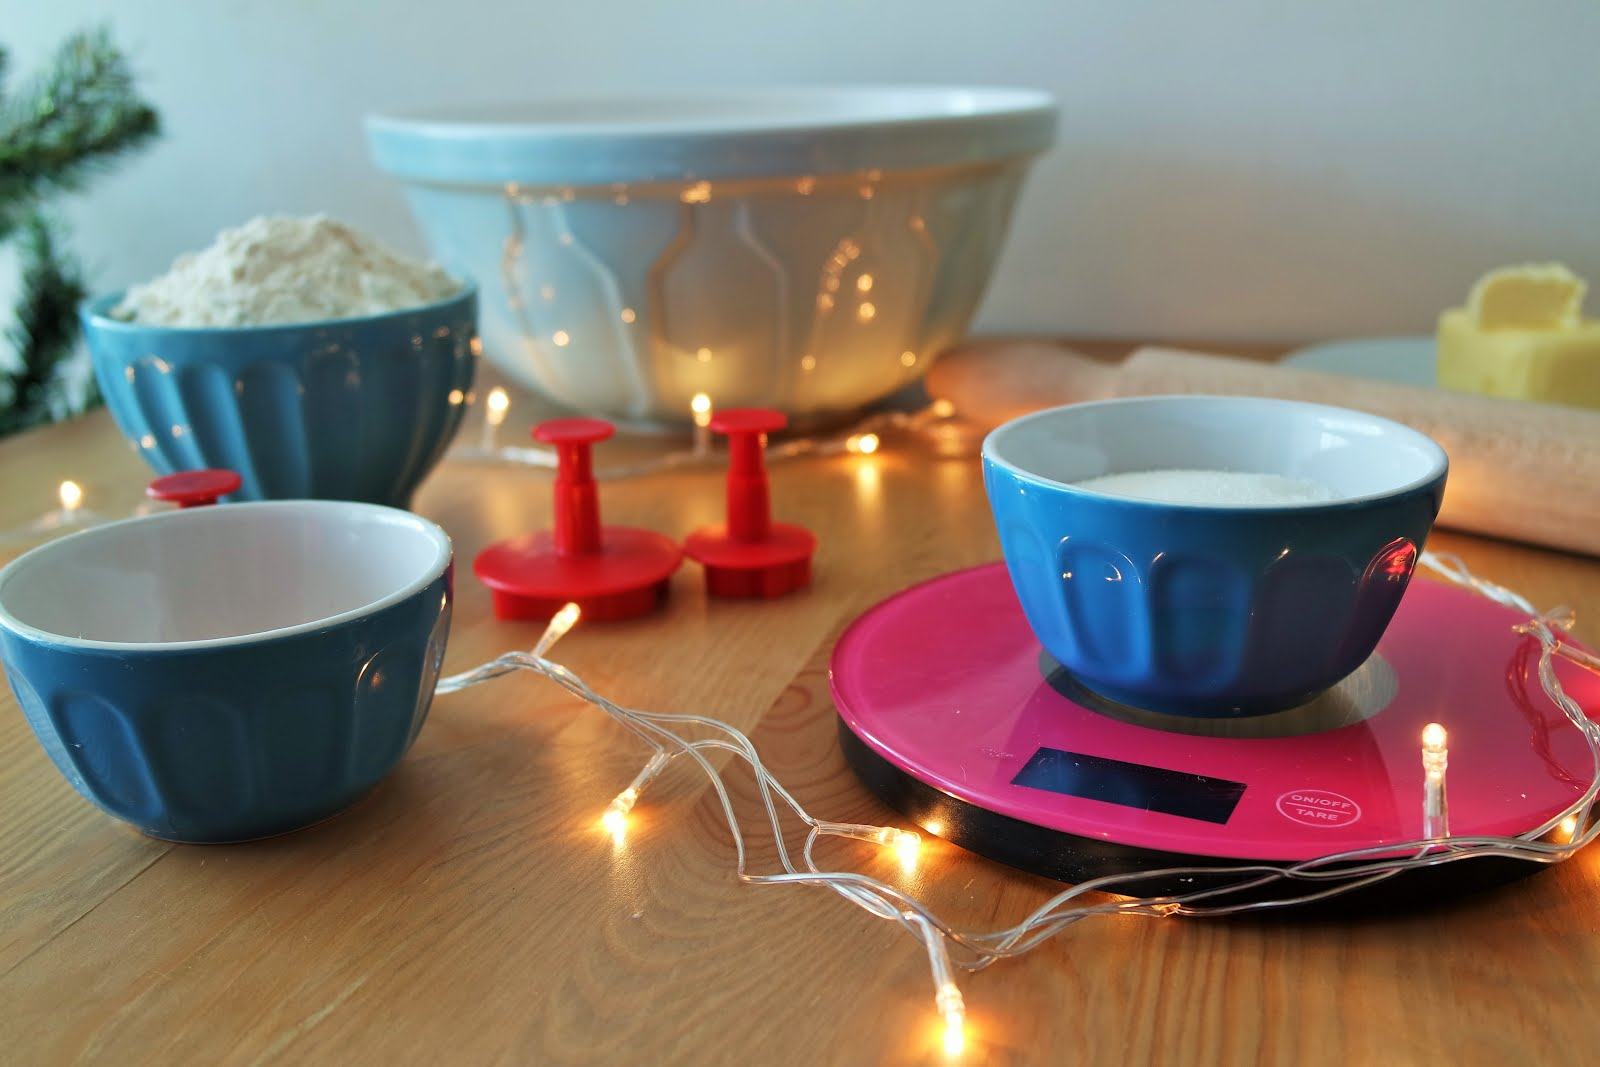 Christmas cookies recipe: Ingredients set out on a table with fairy lights